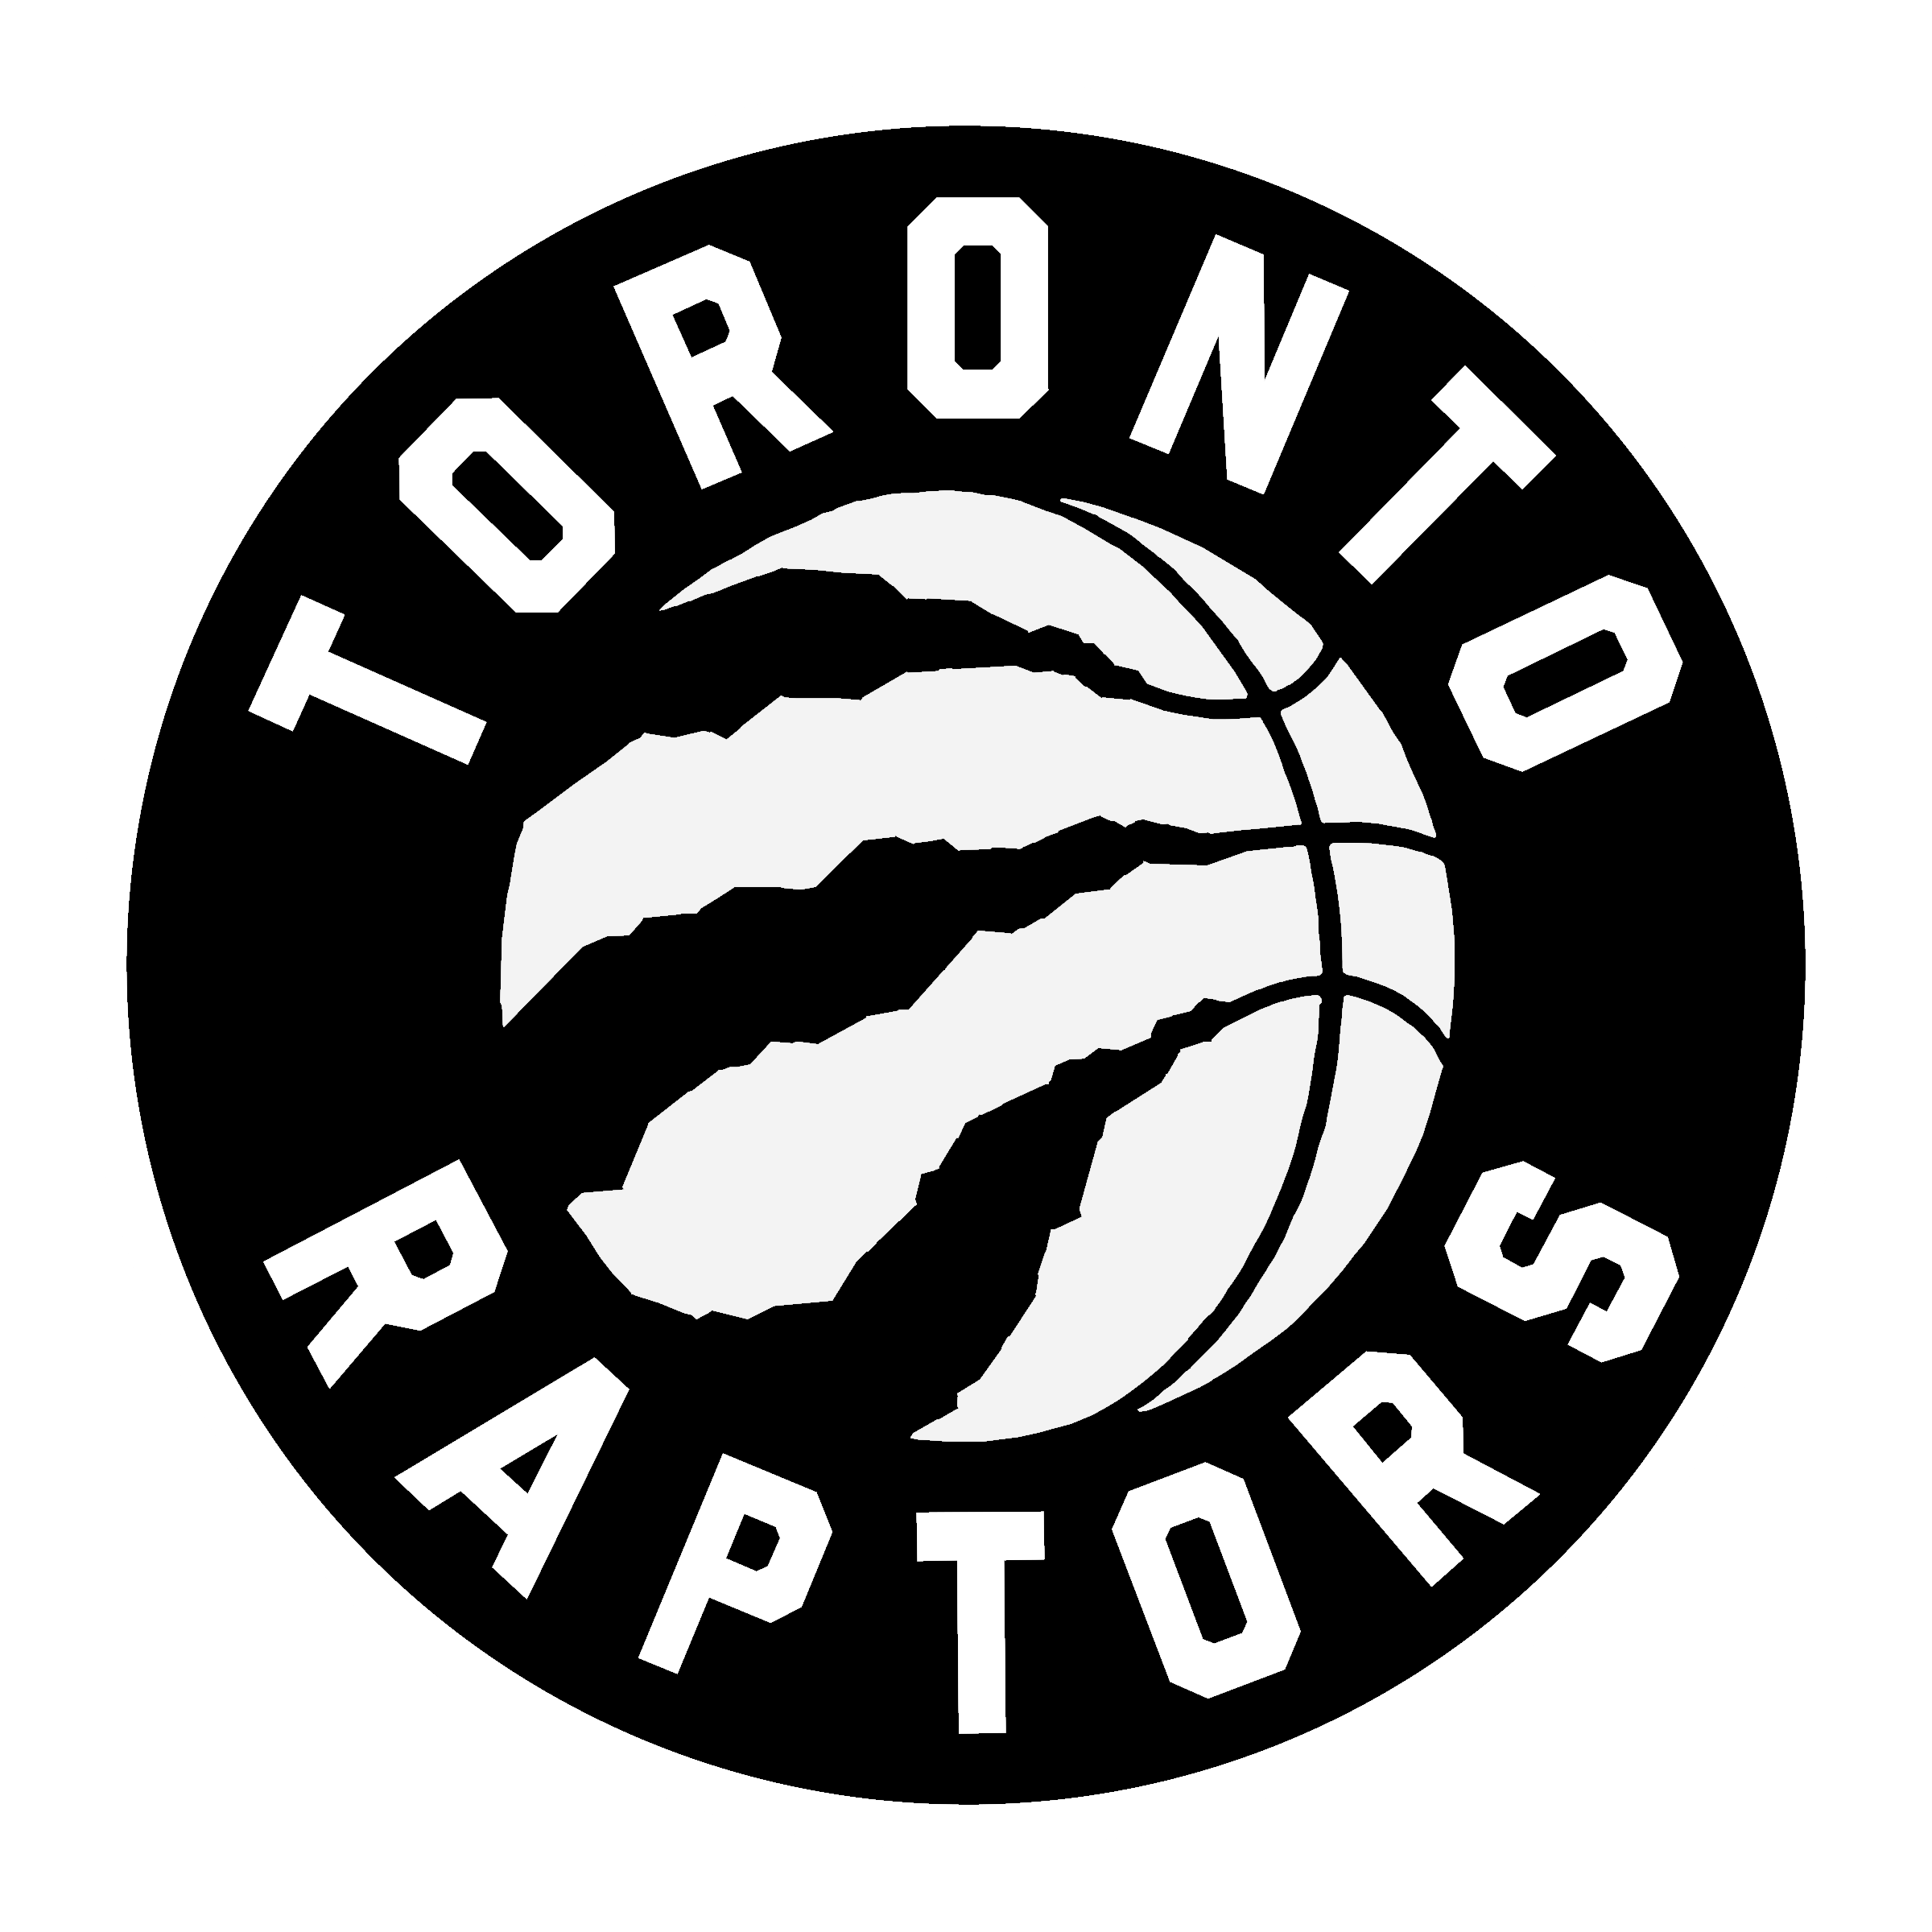 Raptor vector black and white. Toronto raptors logo png